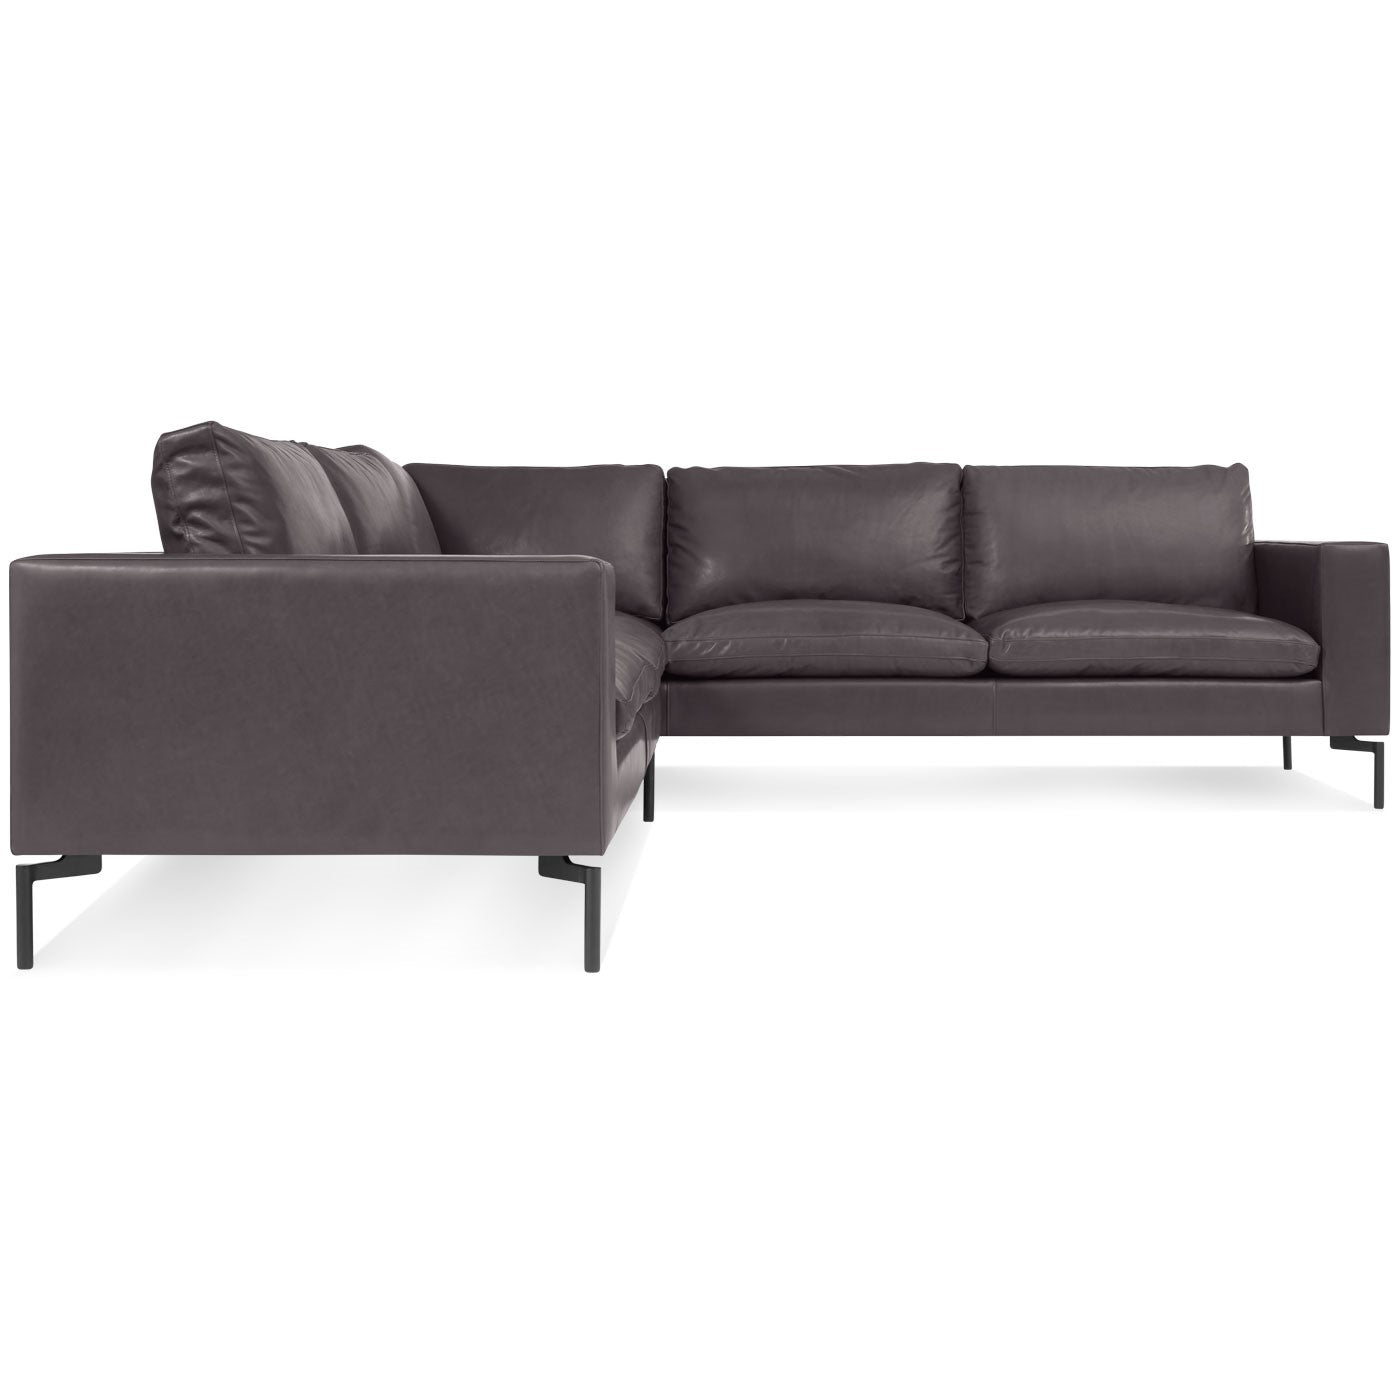 "New Standard 102"" Leather Sofa Sectional"